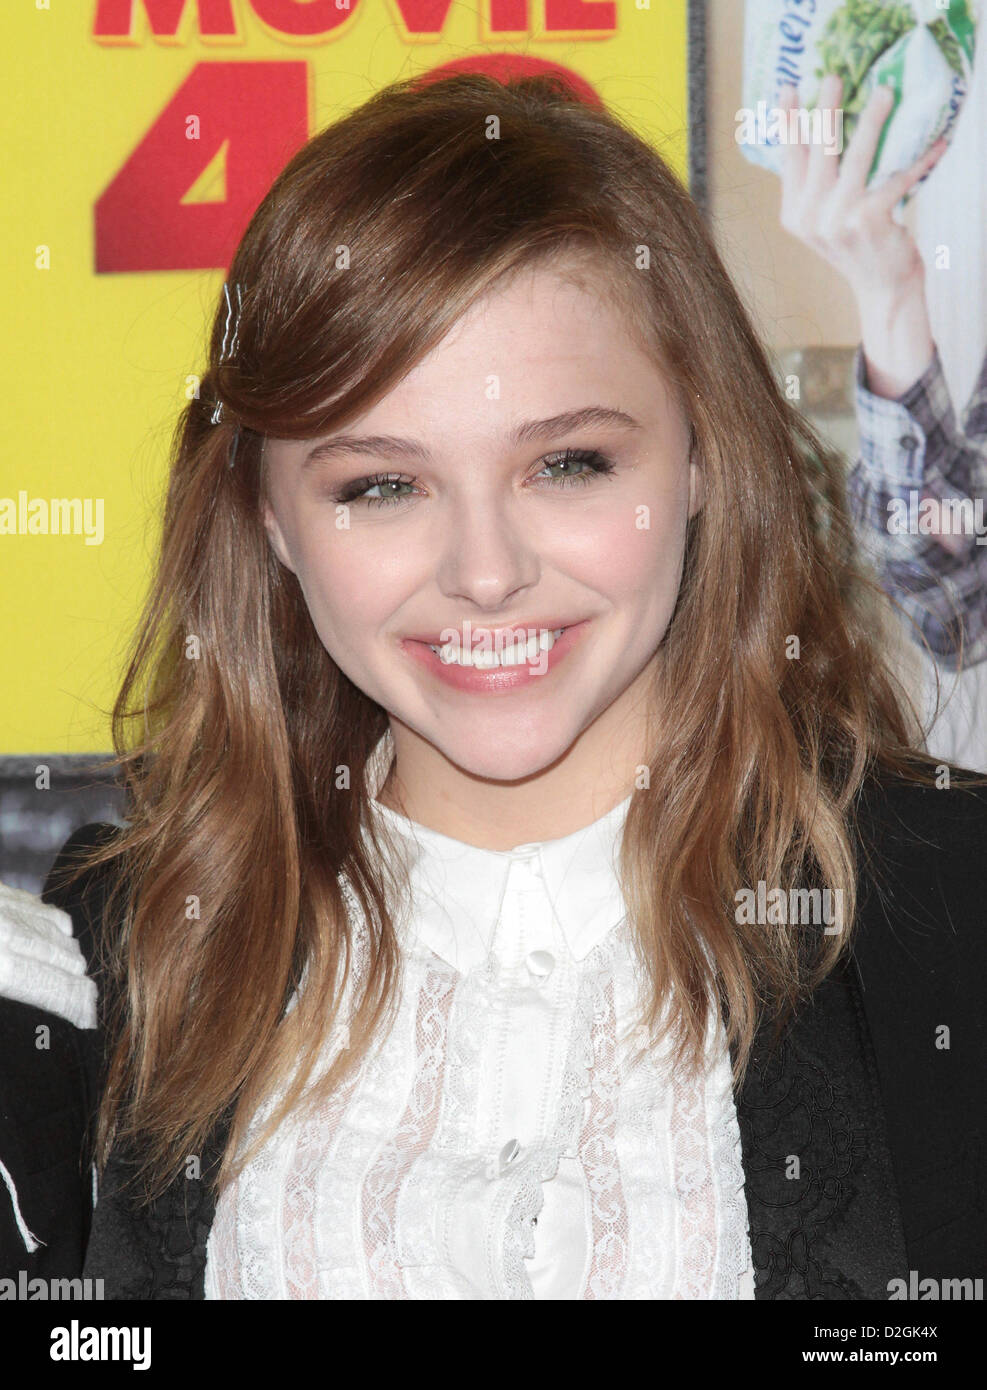 Search chloe grace moretz lips 27 image search chloe grace moretz lips - Chloe Grace Moretz Premiere Of Movie 43 Los Angeles California Usa 23 January 2013 Stock